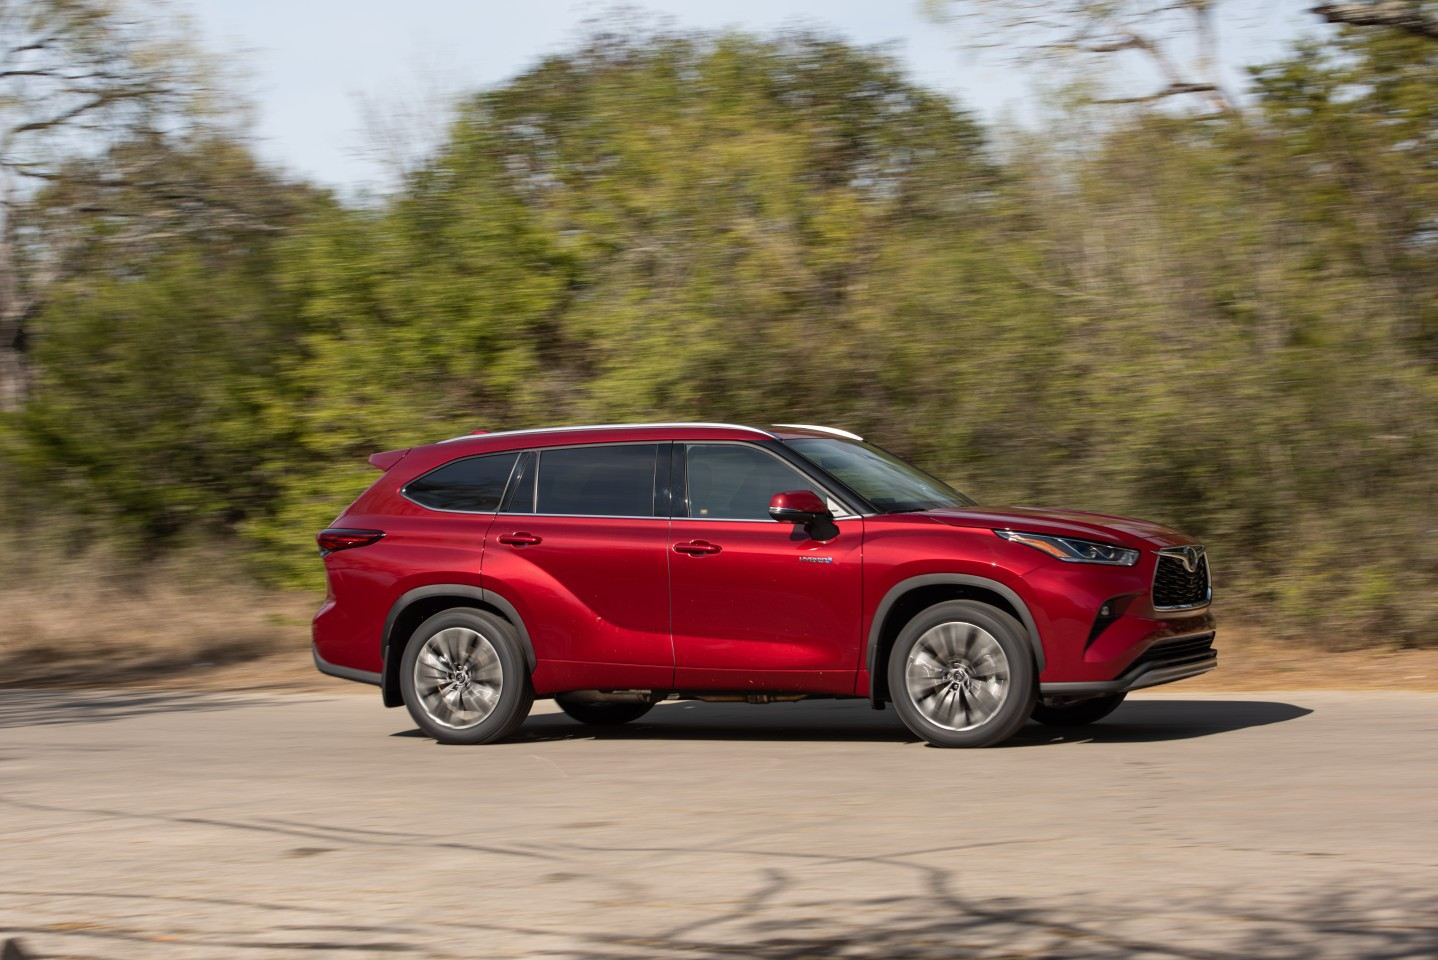 Toyota made a light refresh for the exterior of the Highlander, simplifying body lines and added a little curvature to the crossover